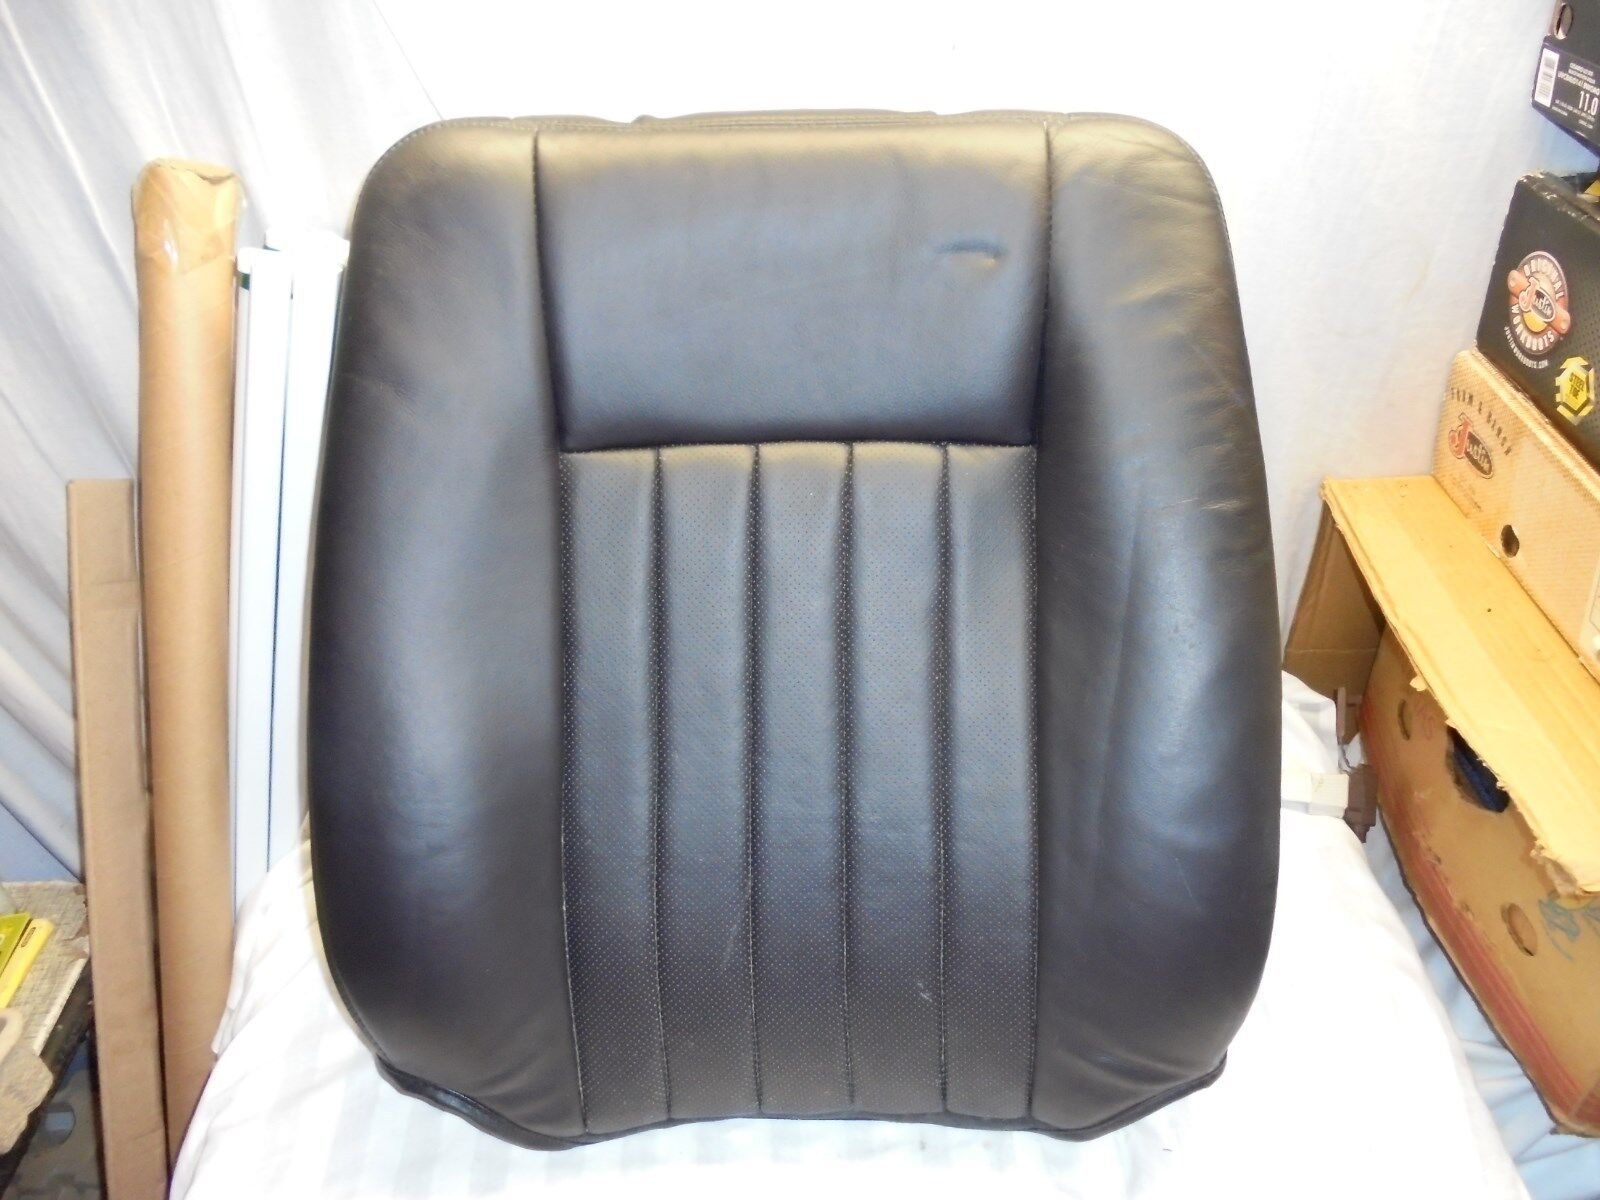 Used Lincoln Navigator Seats For Sale Seat Wiring Diagram 2003 Rh Passenger Side Front Back Cover Foam Black